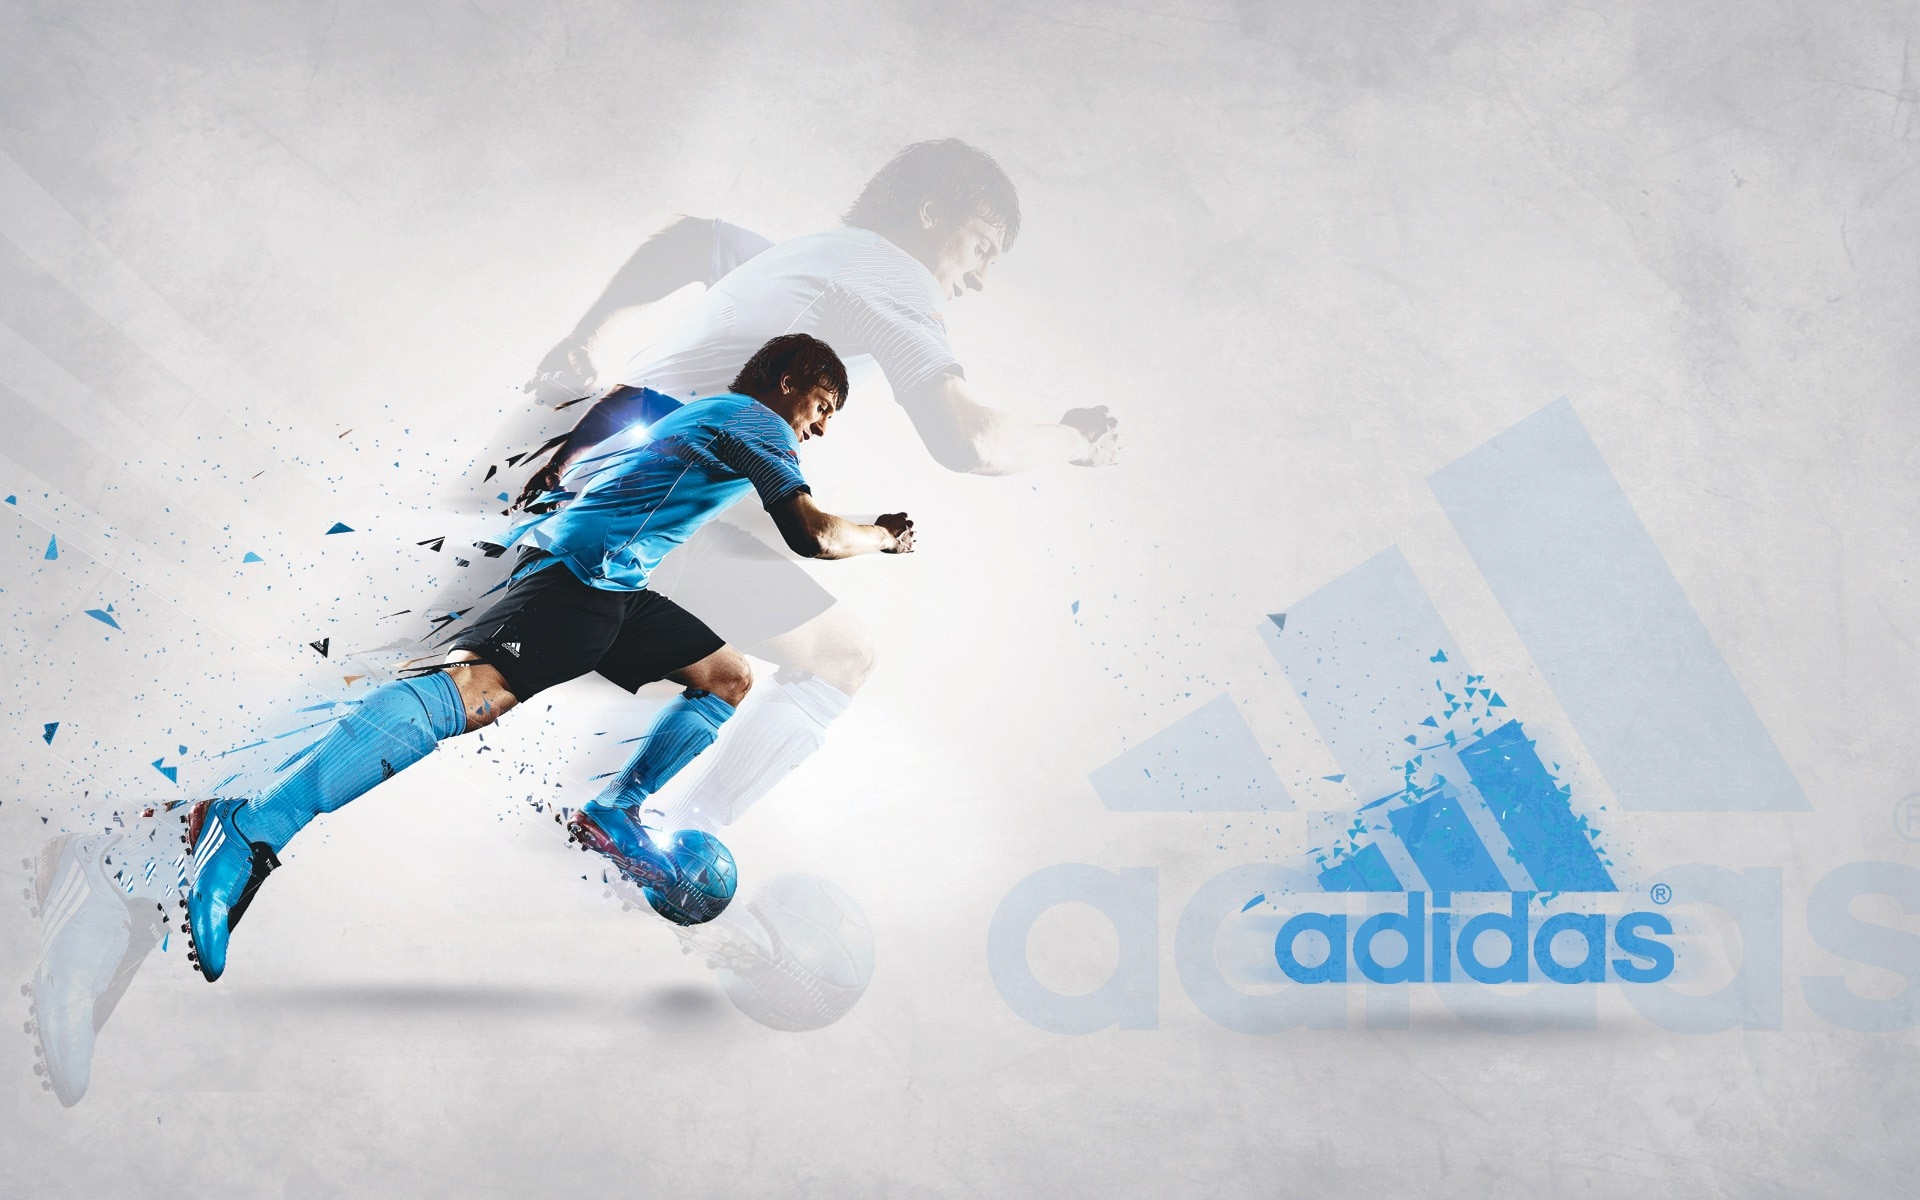 adidas Full HD Wallpaper and Background | 1920x1200 | ID ...